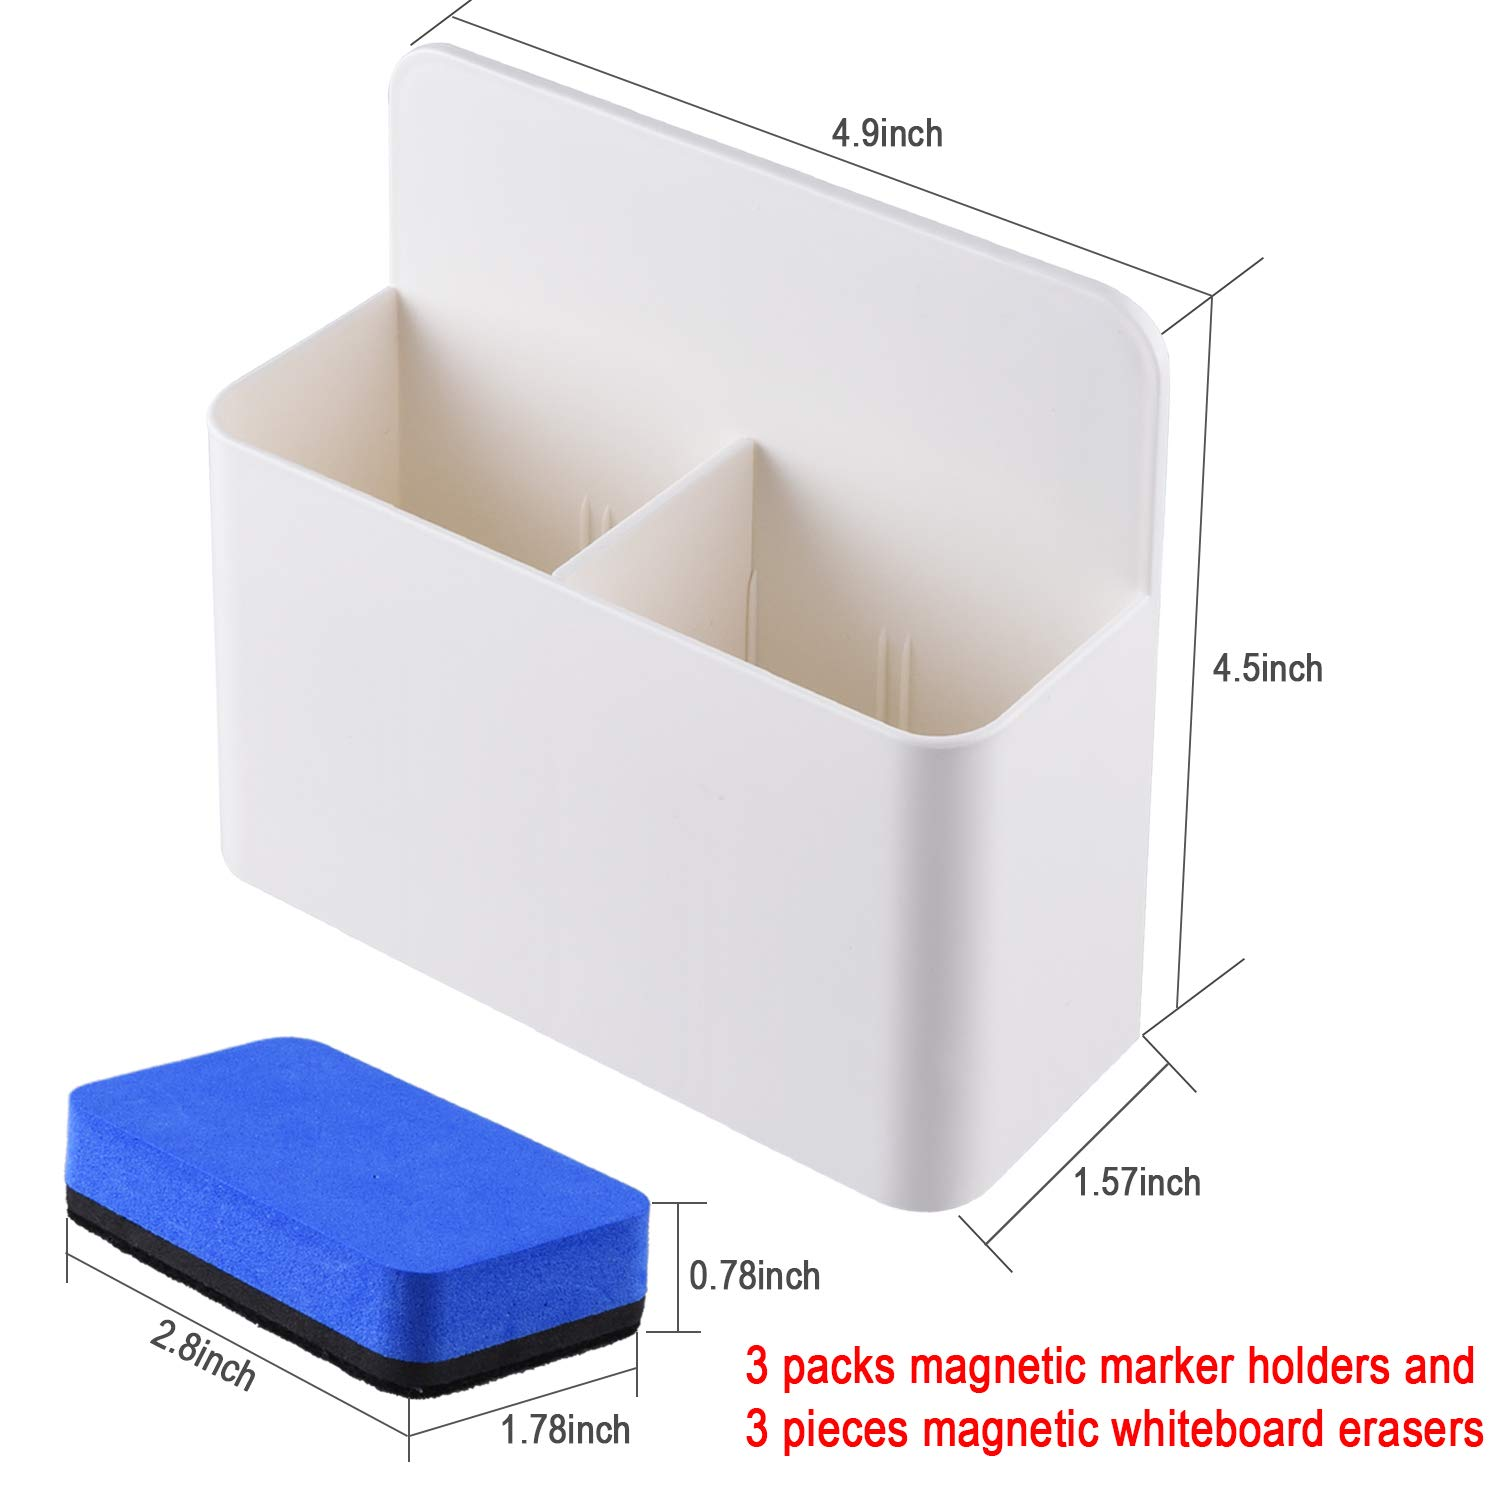 Bonus: 3 Pcs Magnetic Whiteboard Erasers SIQUK 3 Packs Magnetic Marker Holder Whiteboard Marker Organiser Magnetic Pen Holder Dry Erase Organizer for Whiteboard